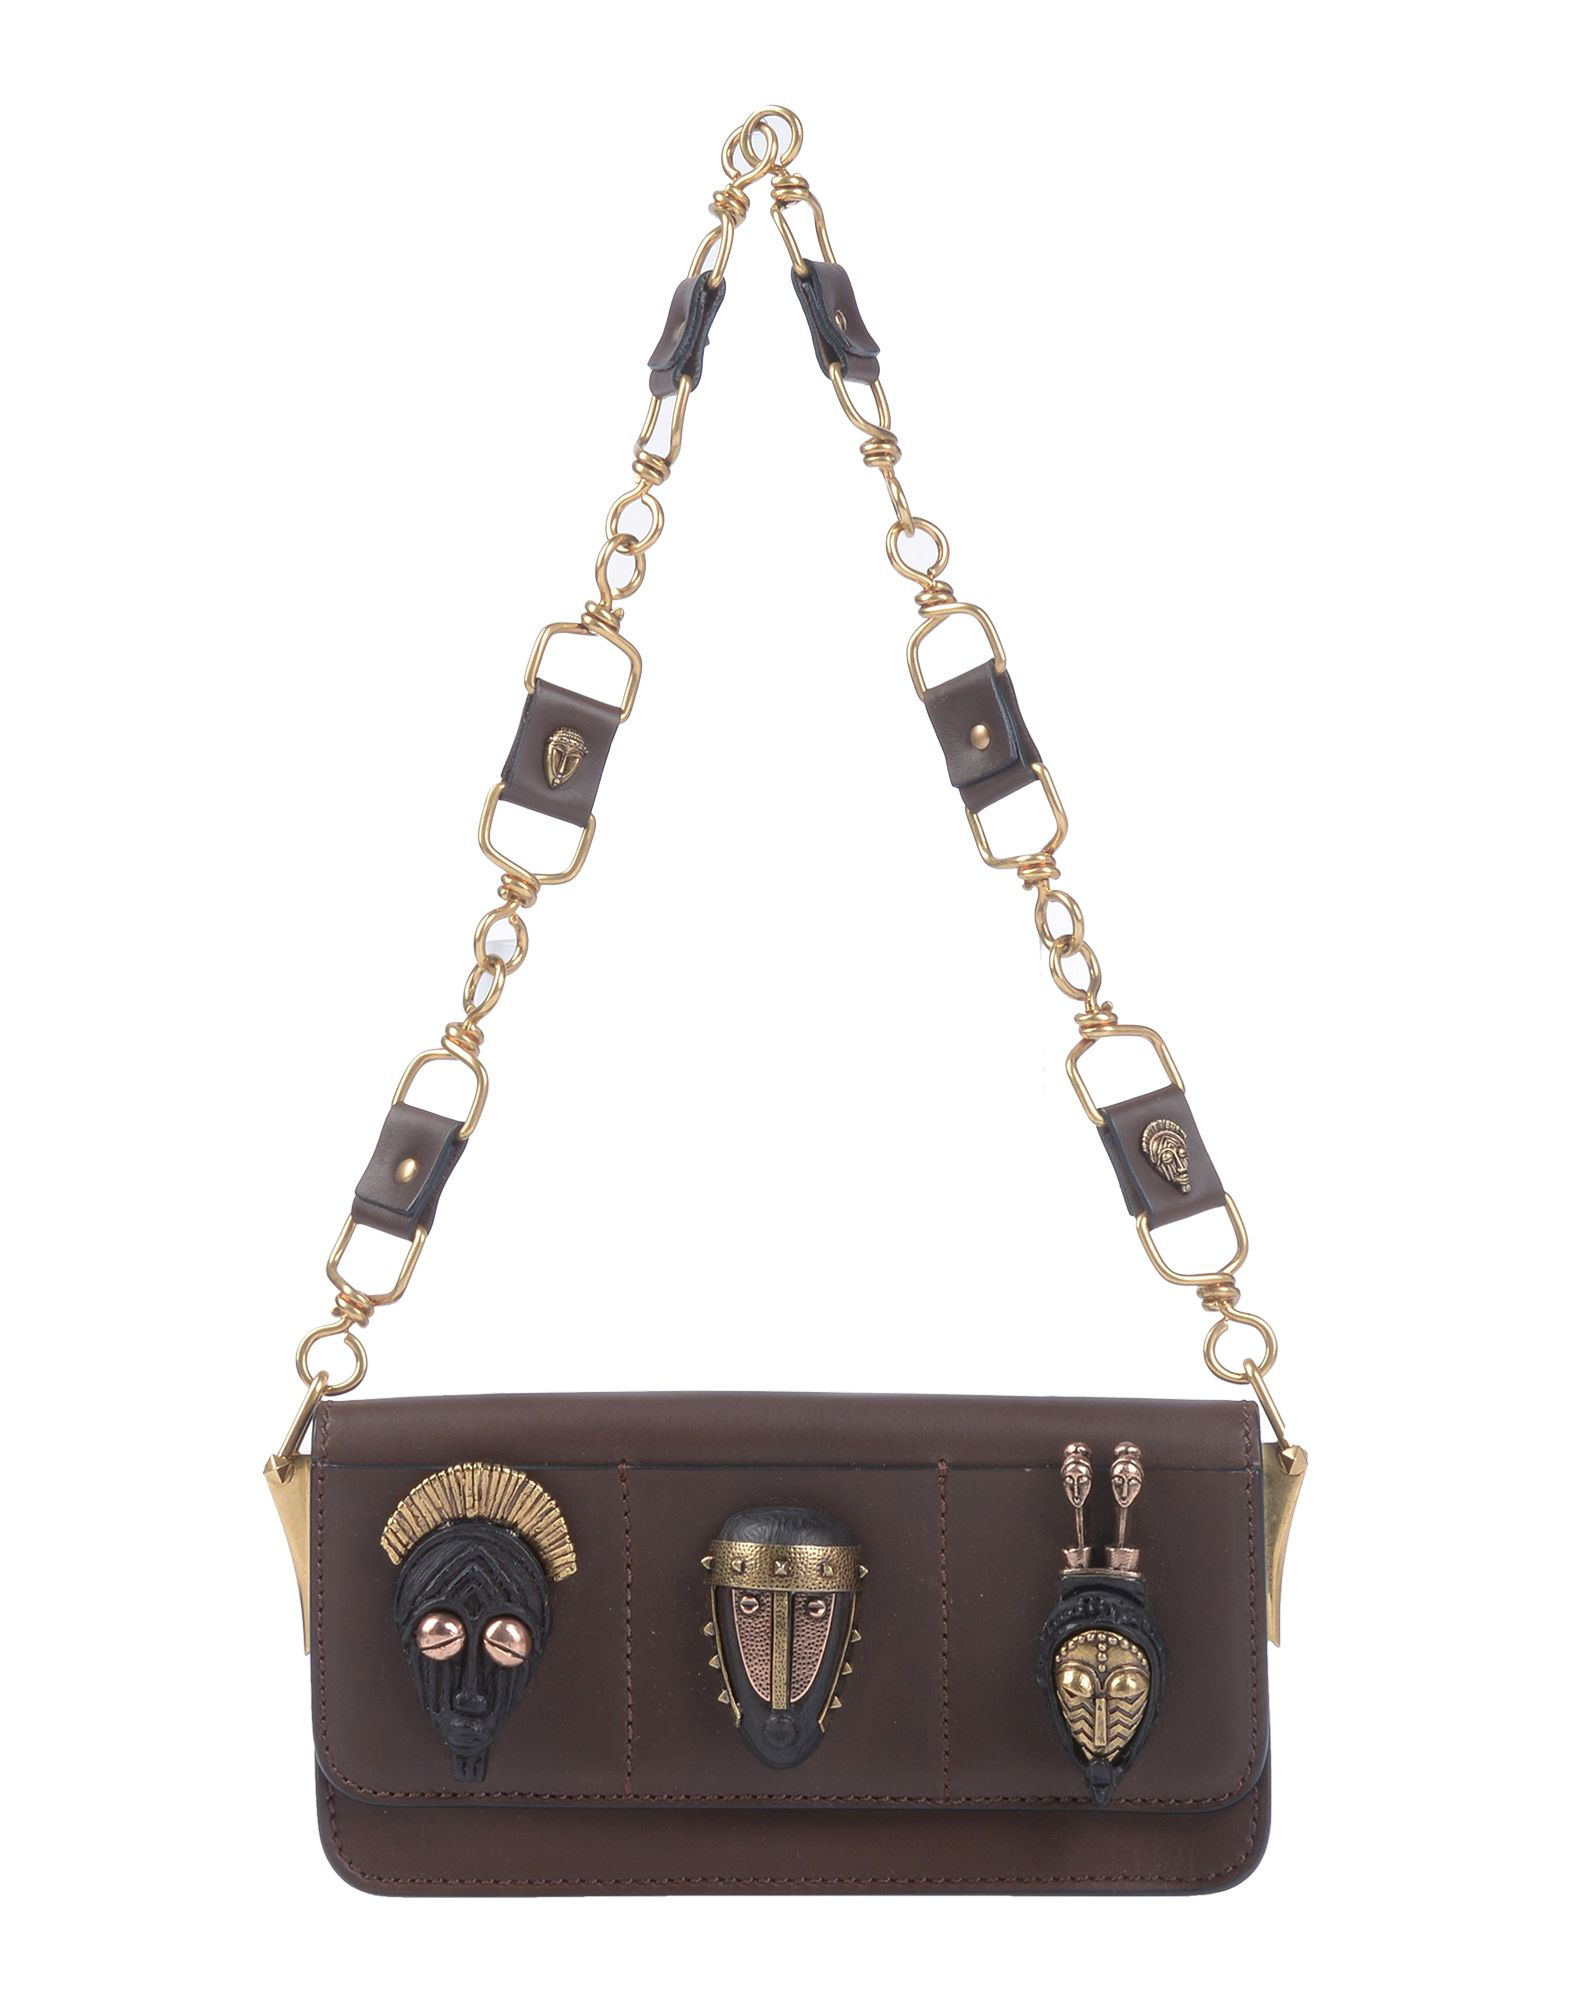 Valentino Handbags In Dark Brown